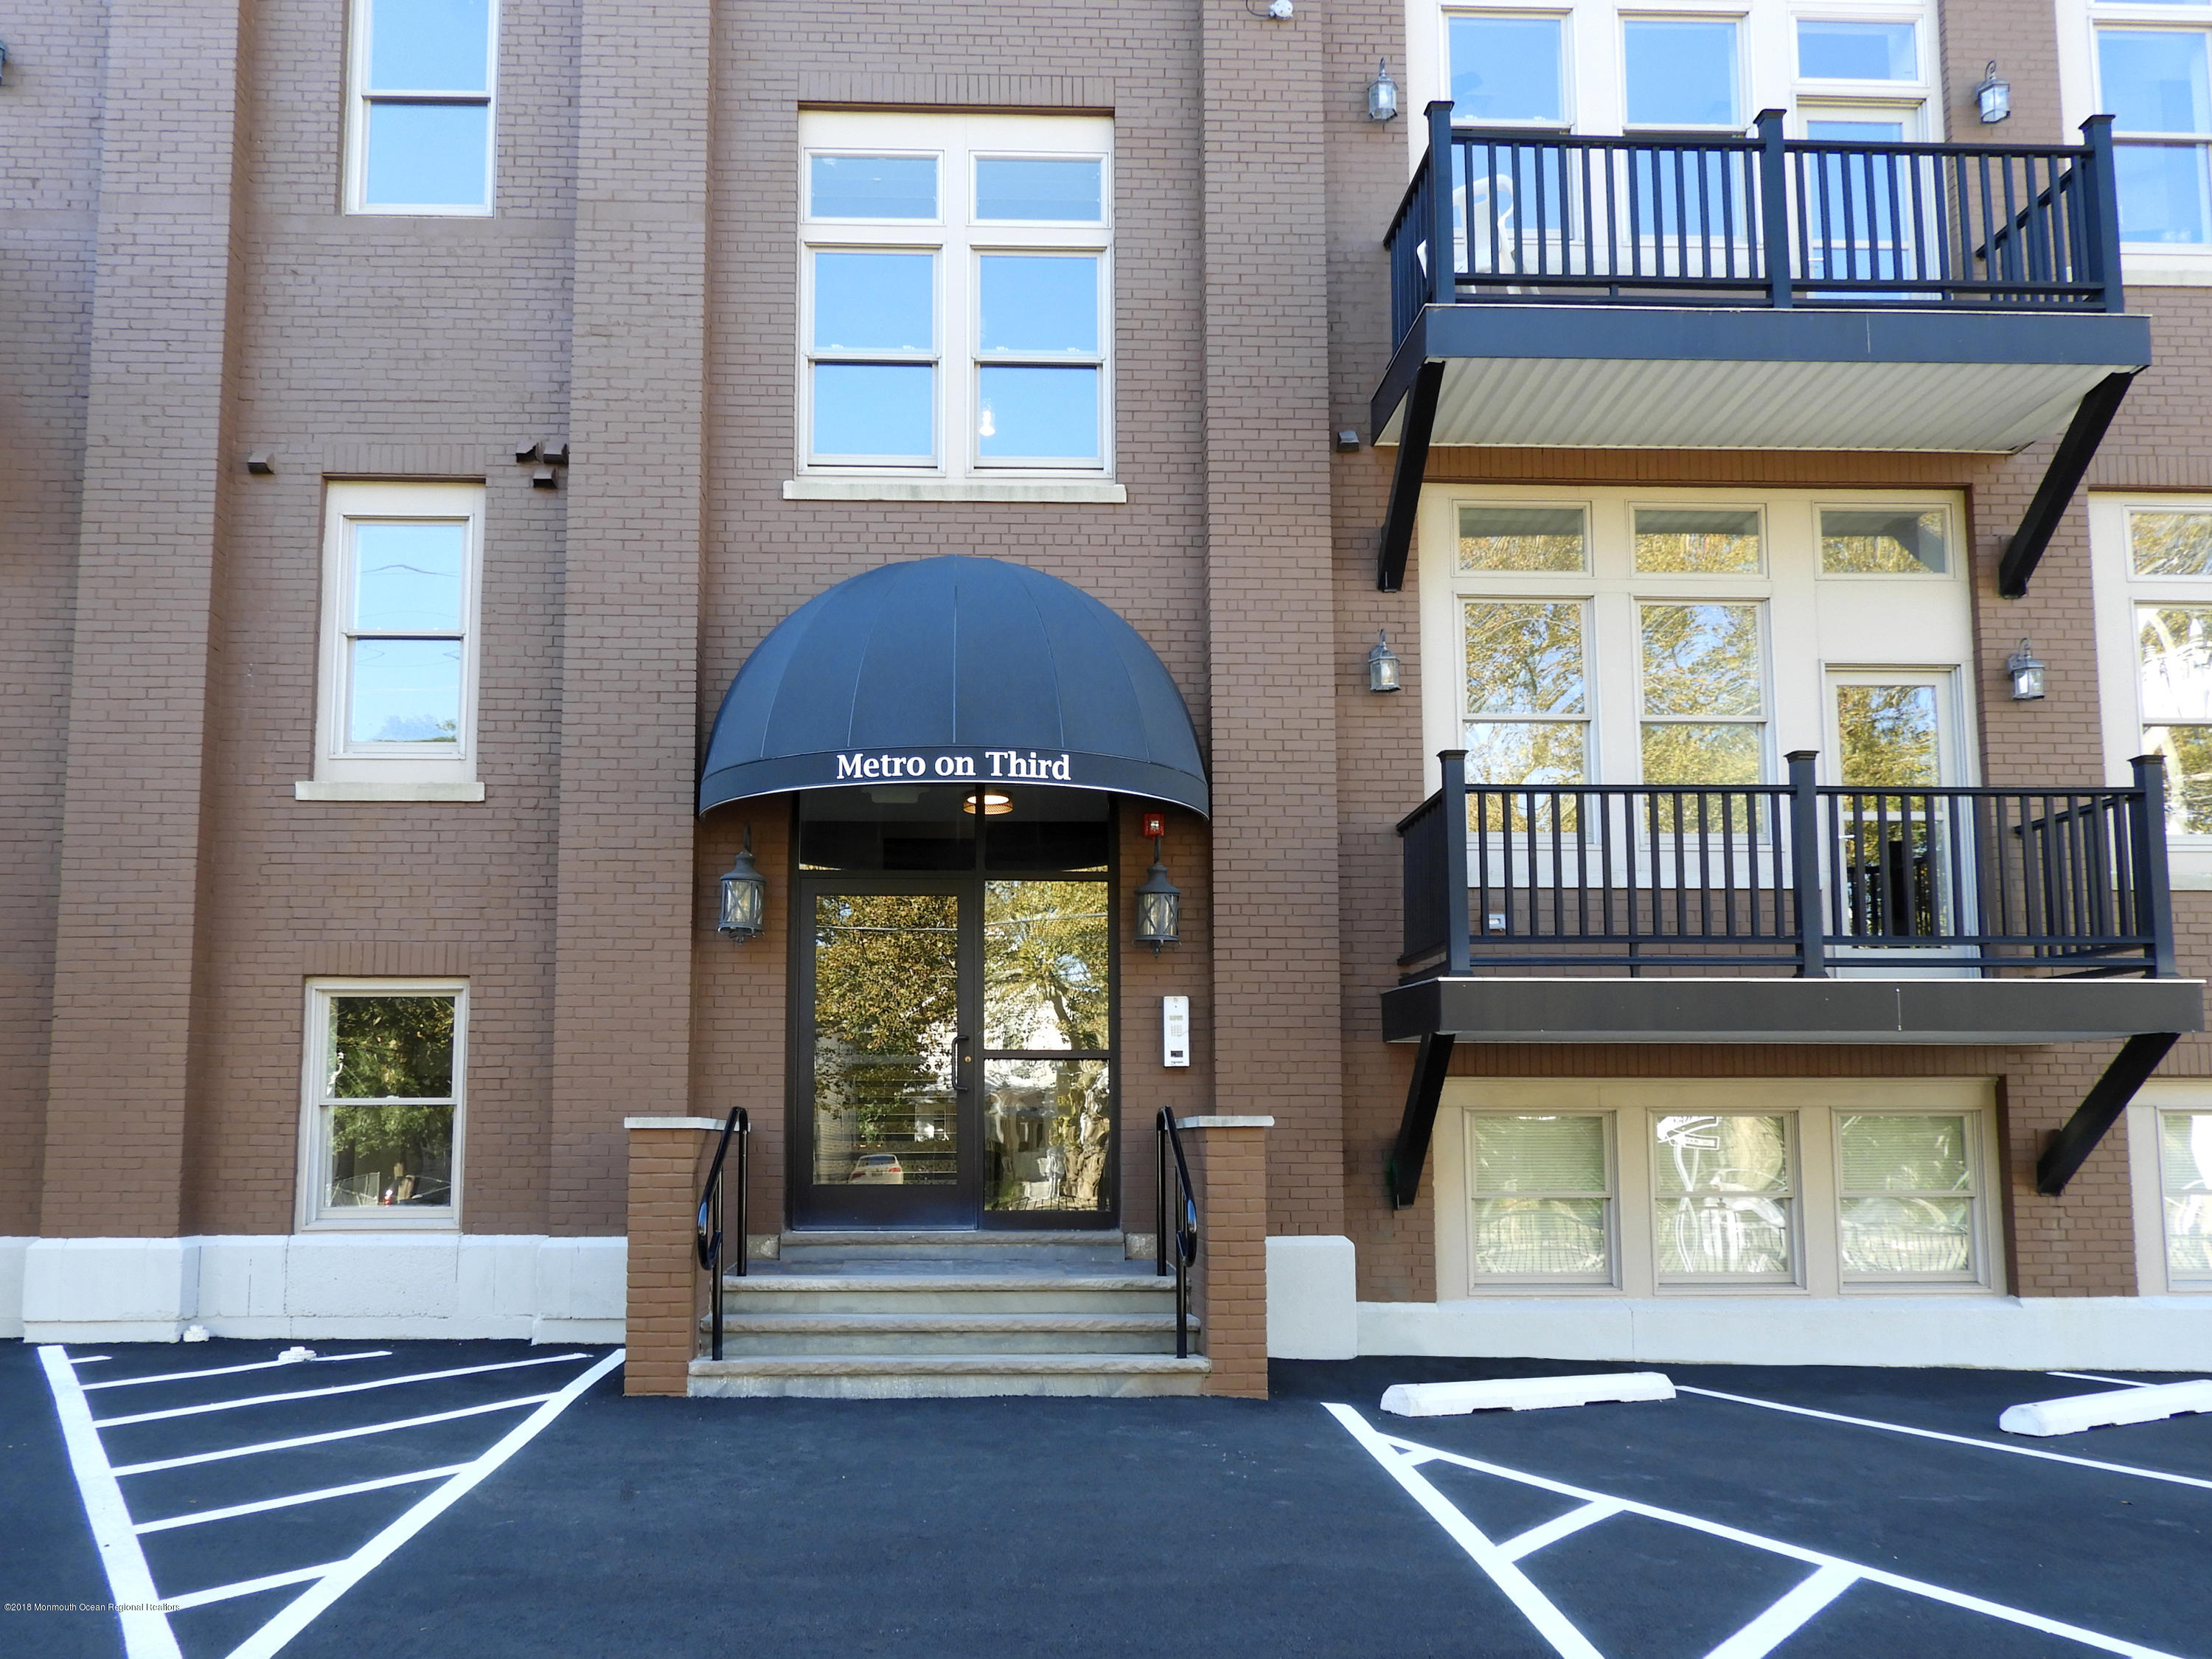 Newest rental addition to Asbury Park! The Metro on 3rd was once the Holy Spirit school, now it's brand new condos with washer & dryers in unit and includes 1 parking space. Centrally located, blocks to beach, downtown and train station.